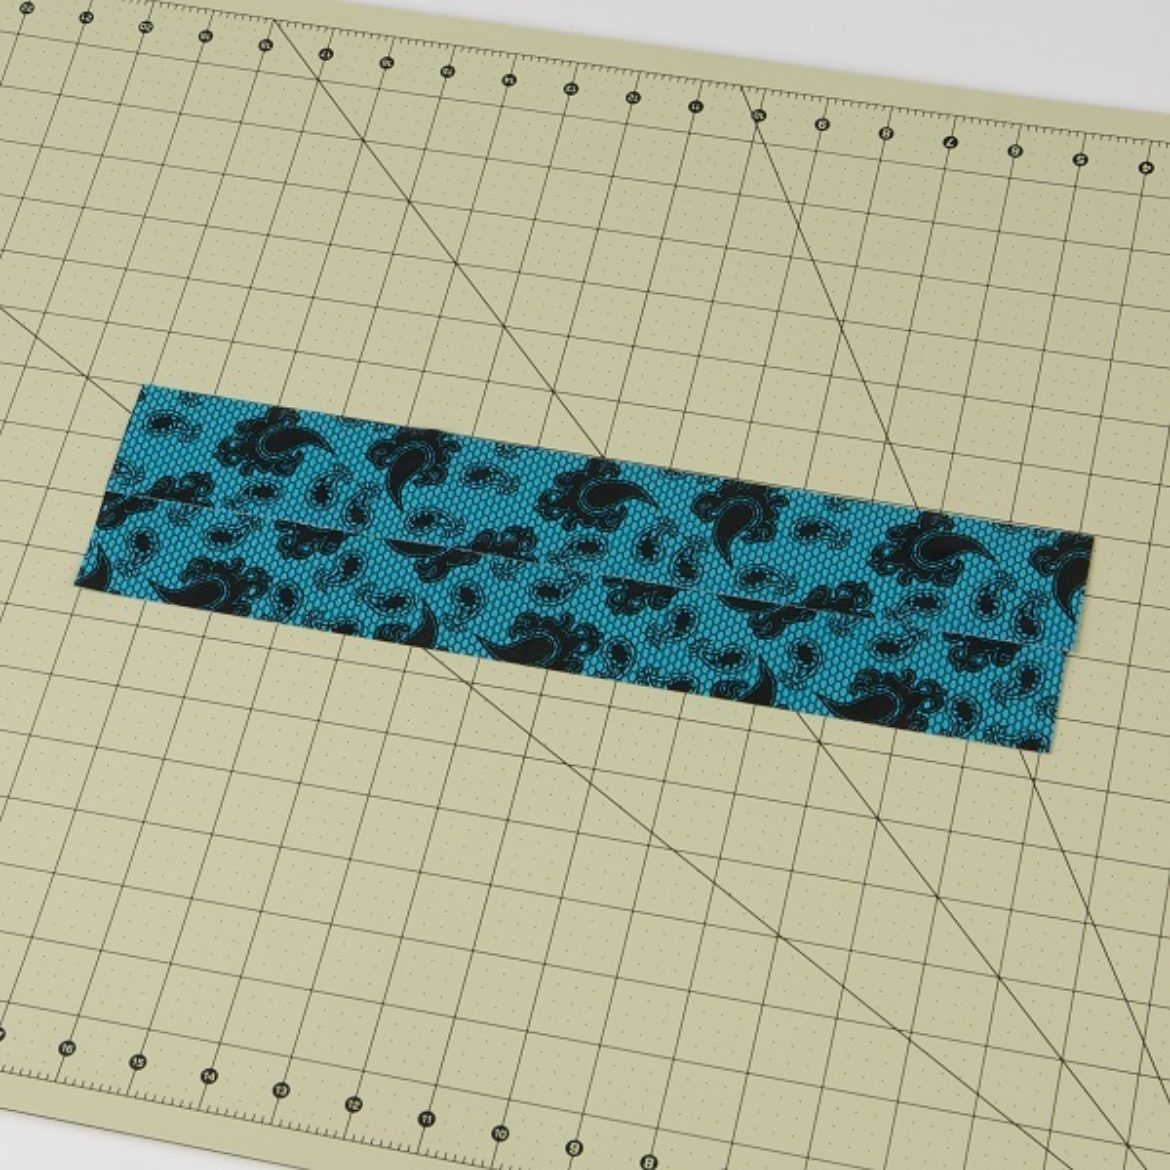 Duck Tape fabric made by laying two pieces of overlapped tape over another set of overlapped pieces